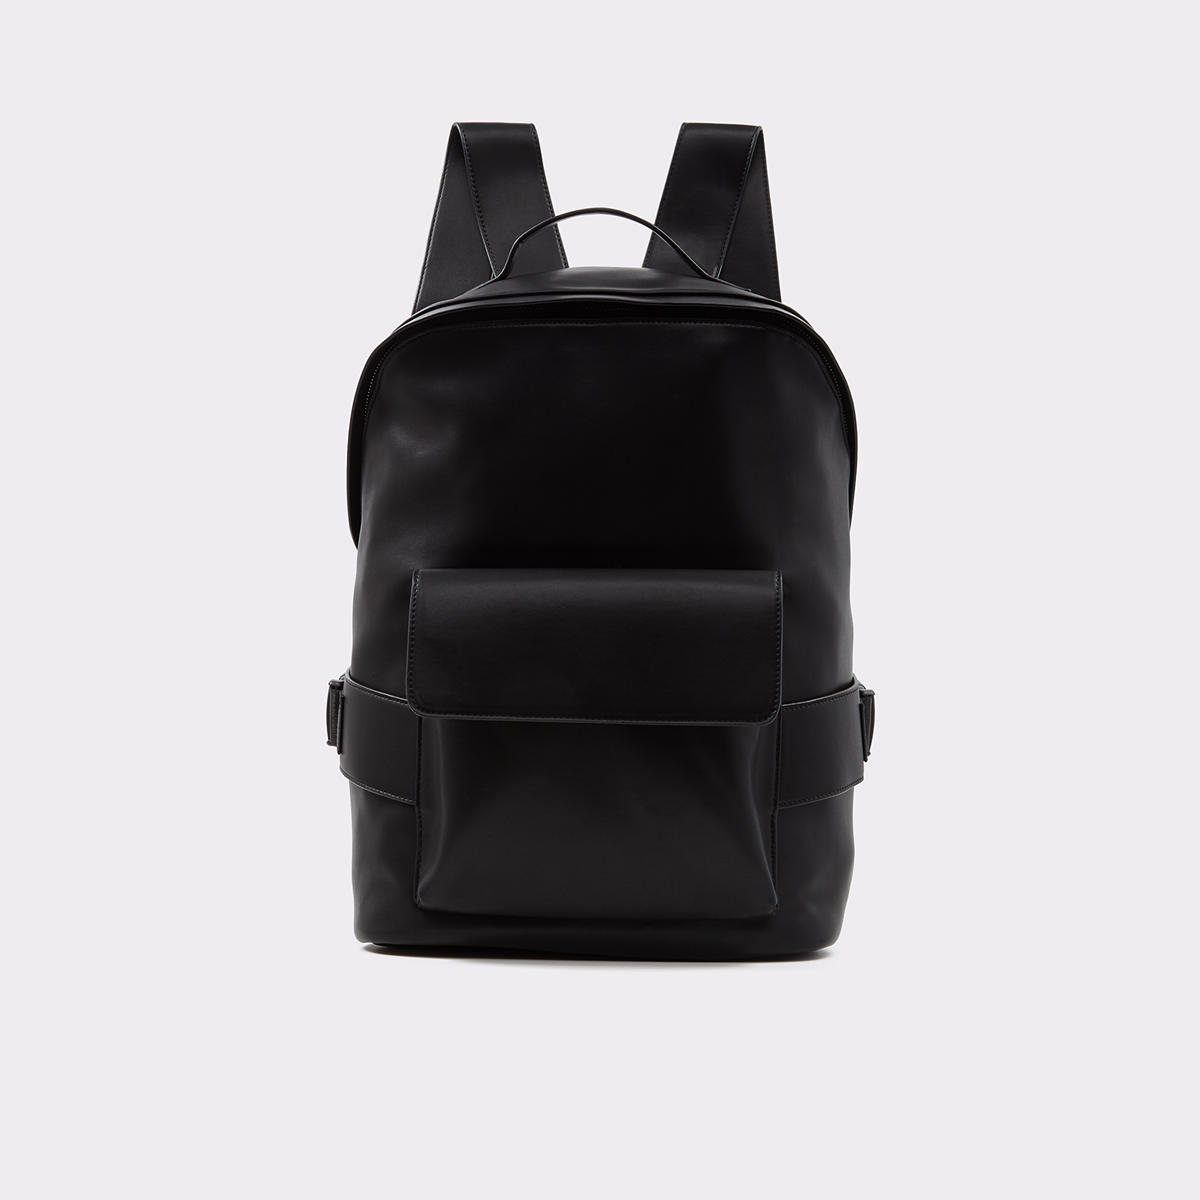 Chelinia Midnight Black Men's Bags & wallets | ALDO US at Aldo Shoes in Victor, NY | Tuggl